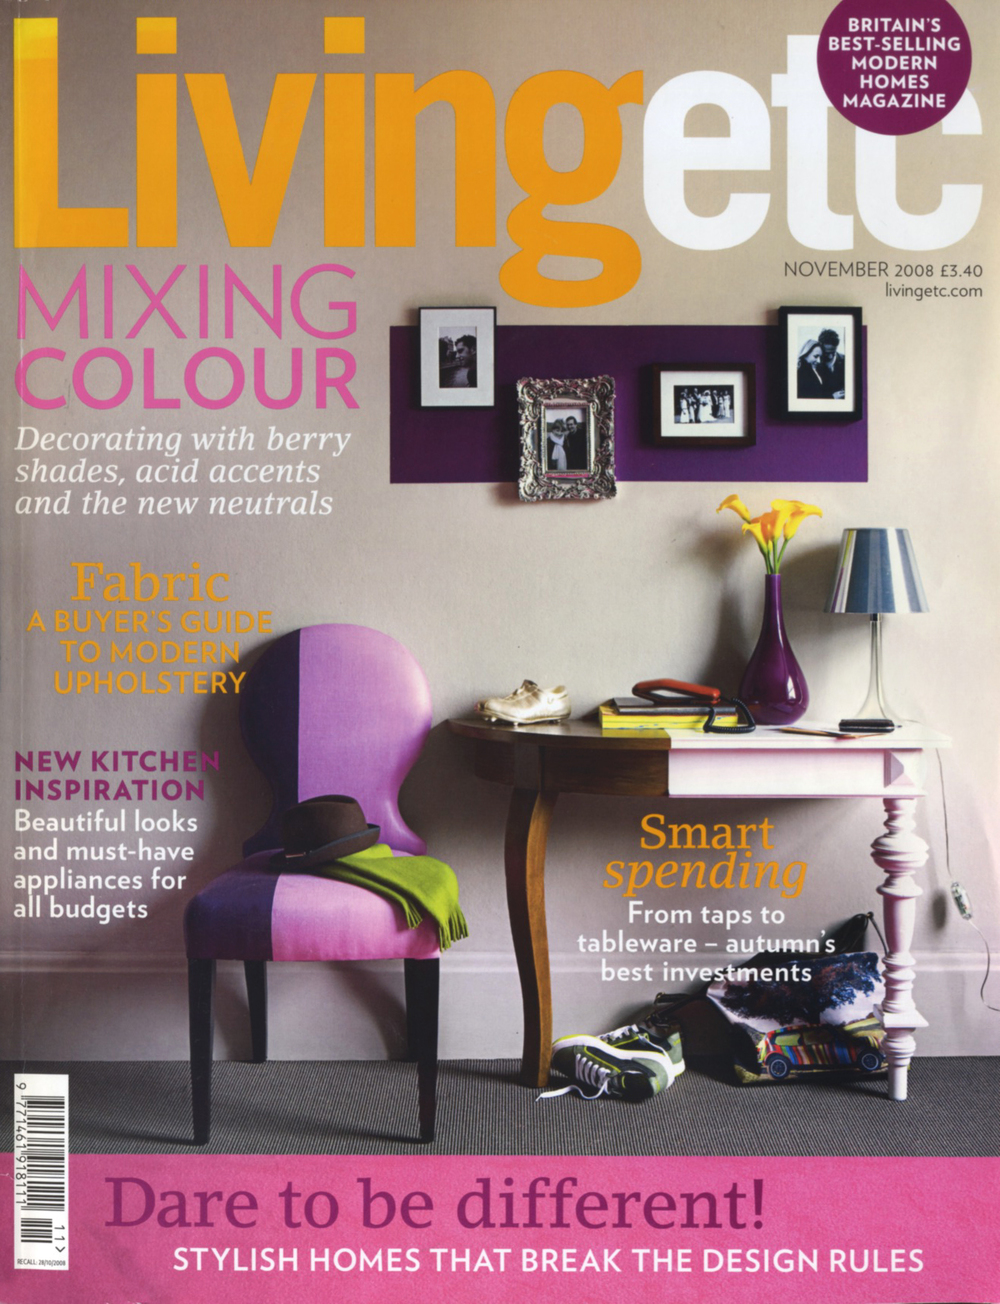 © ghislaine viñas interior design-living ect.11.08_2.jpeg